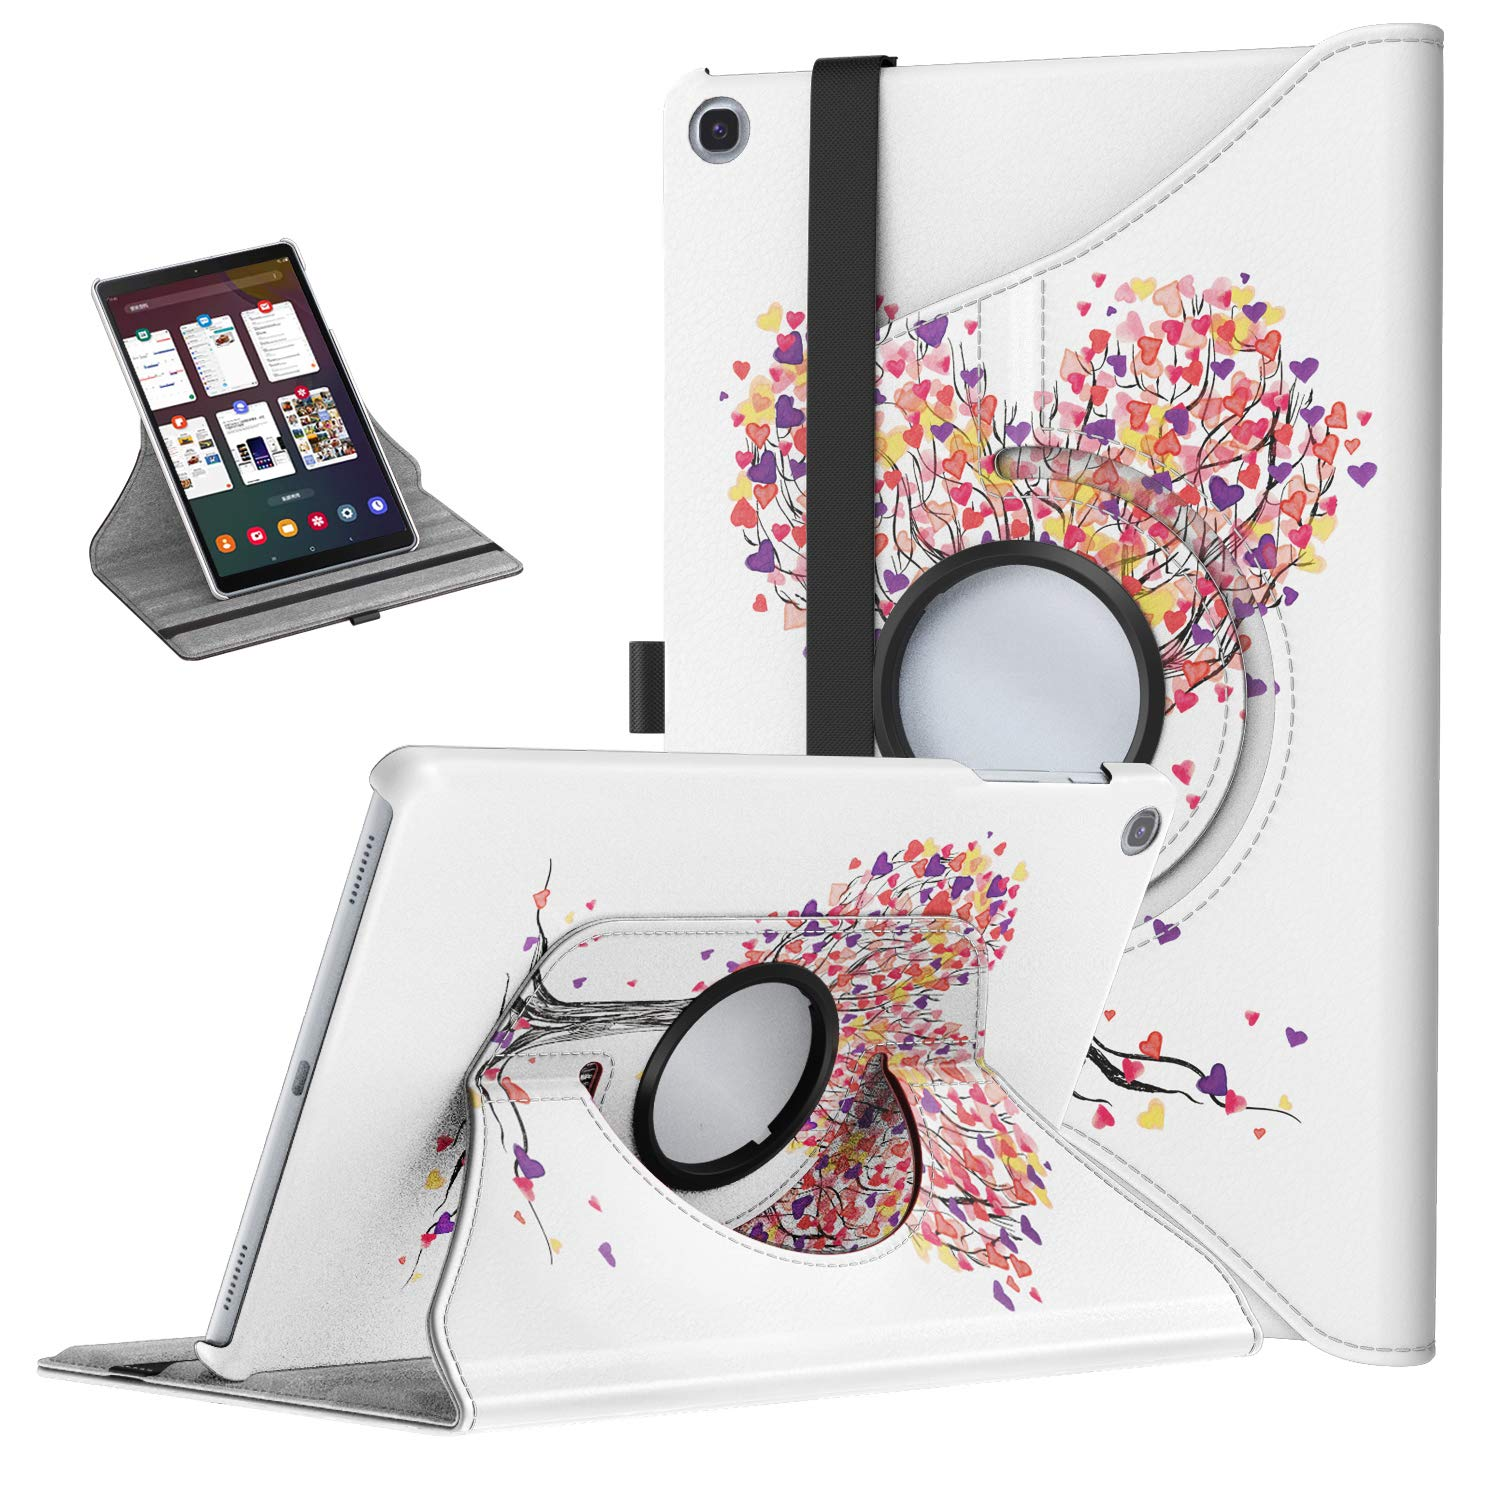 TiMOVO Case for Samsung Galaxy Tab A 10.1 2019 (T510/T515),Ultra Lightweight Slim Shell 360 Degree Rotating Swivel Stand Cover for Galaxy Tab A 10.1 2019 Tablet - Love Tree